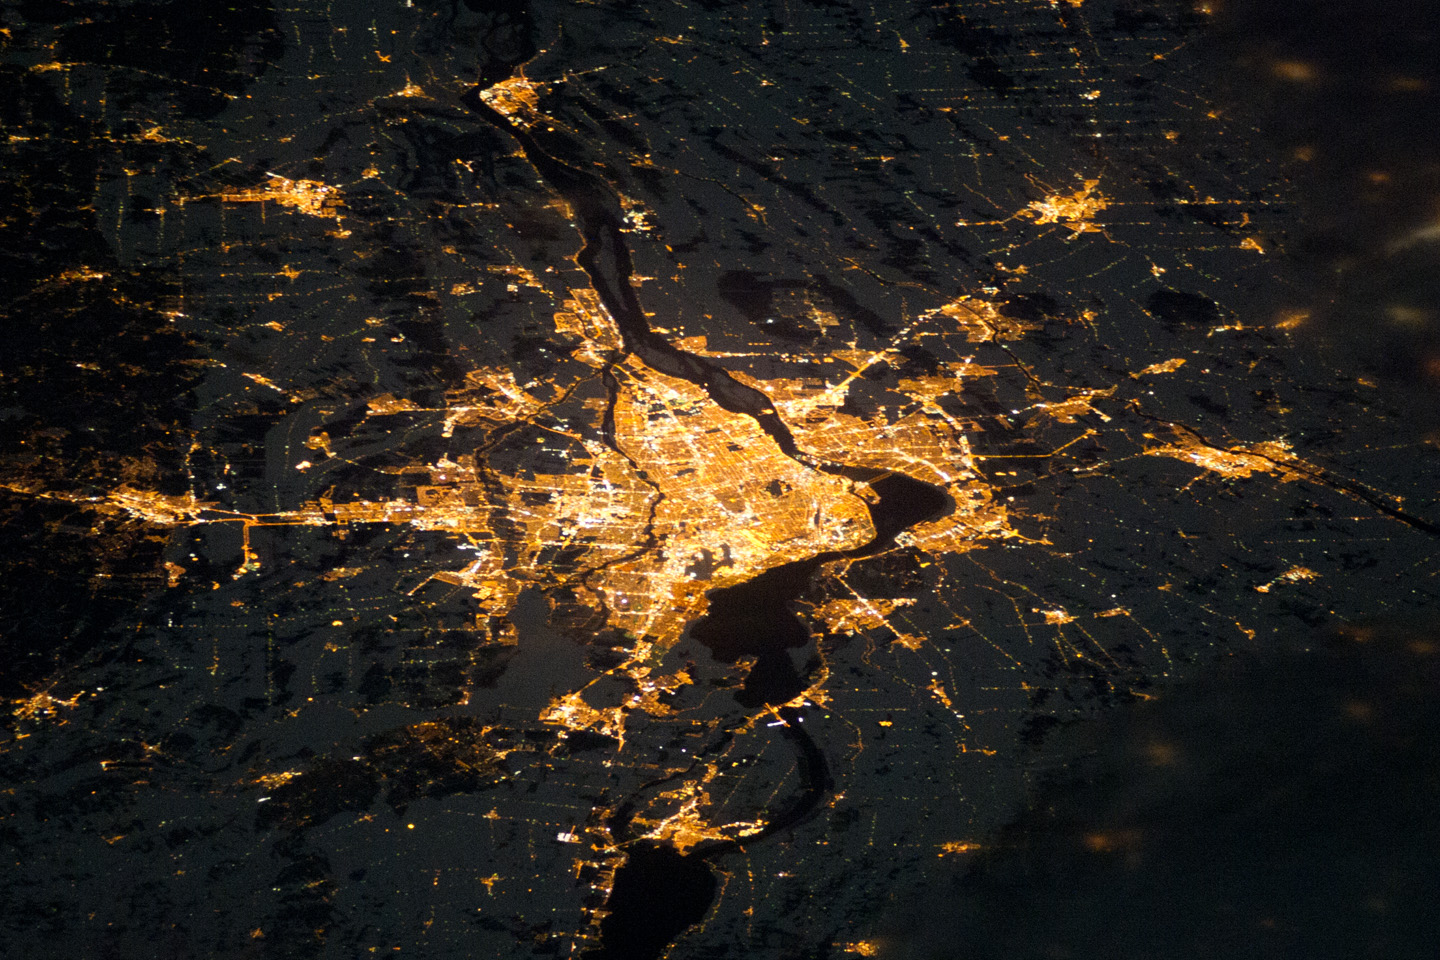 Today's Image of the Day comes thanks to the NASA Earth Observatory and features a look at the city of Montreal, Canada at night.